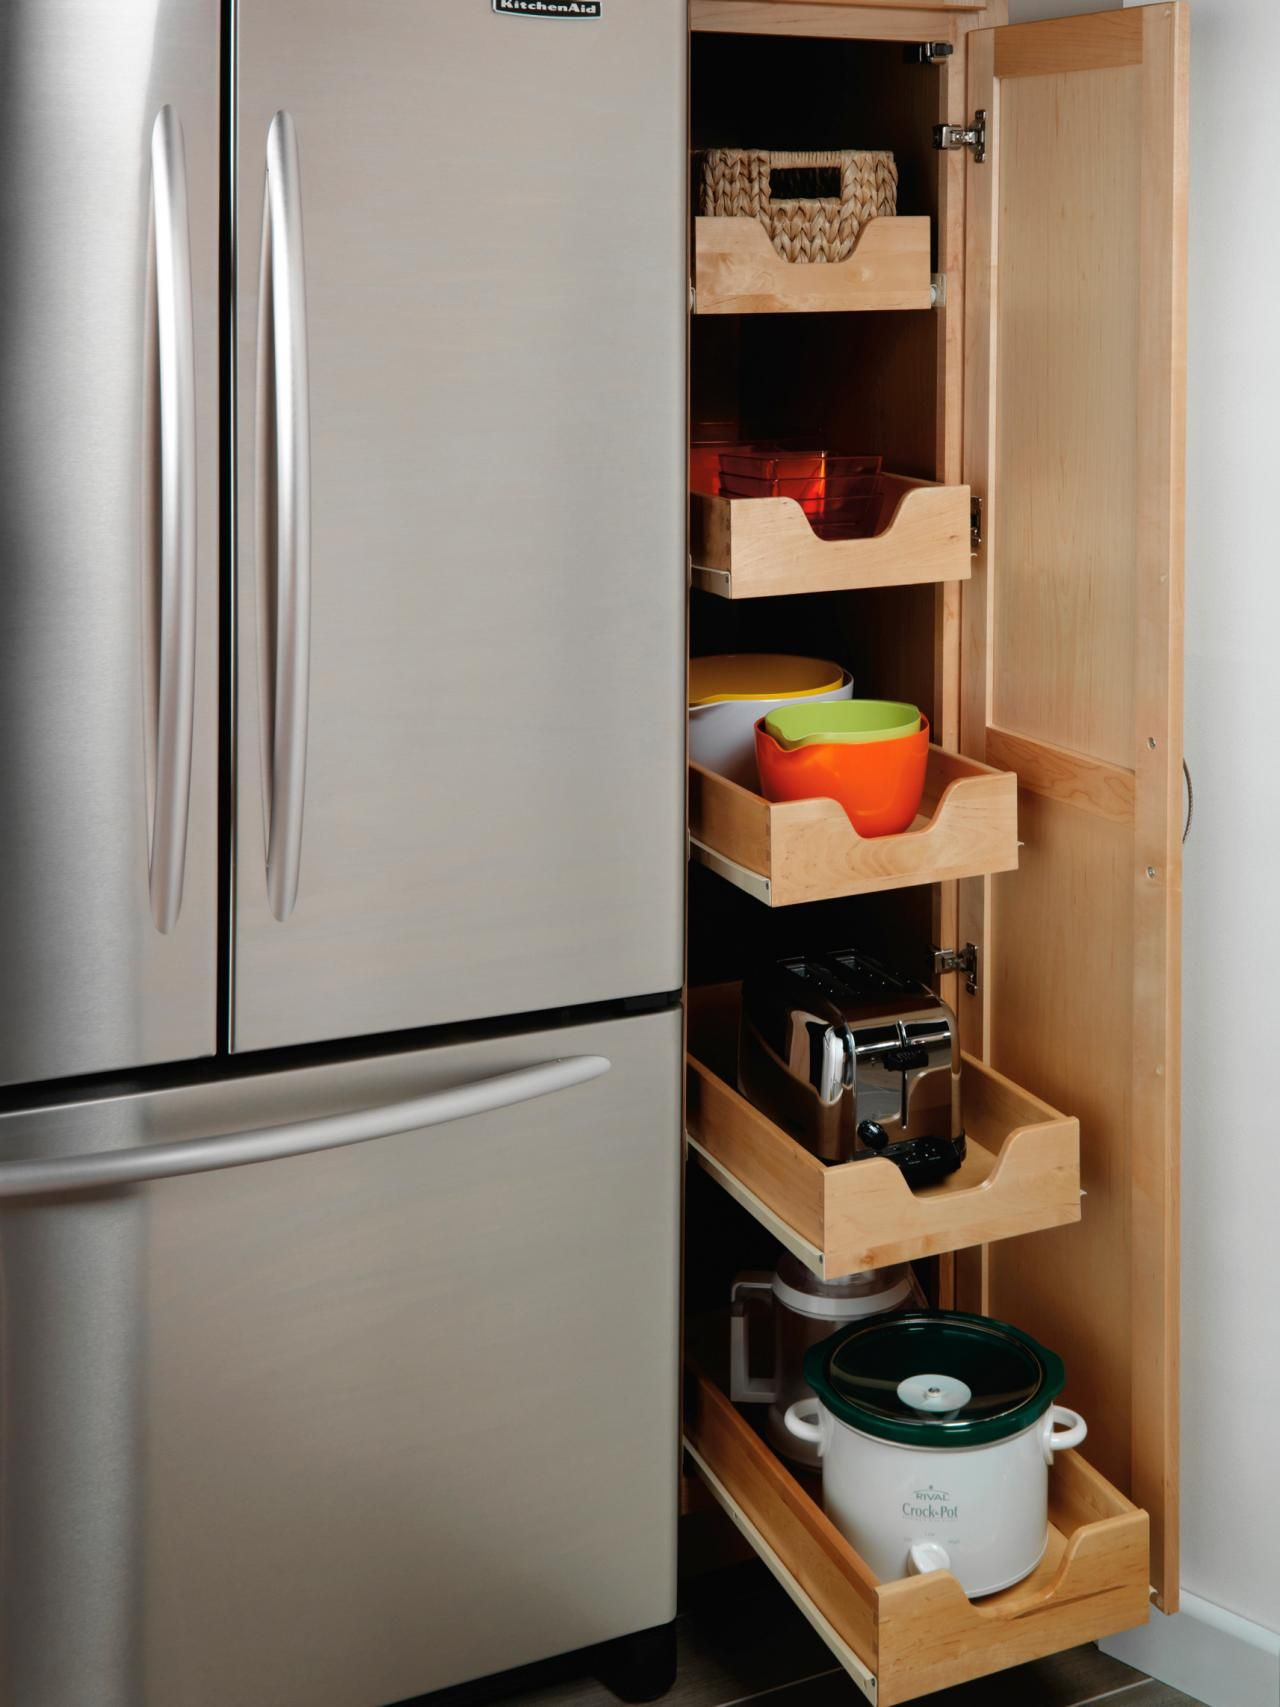 Pantry Cabinets and Cupboards Organization Ideas and